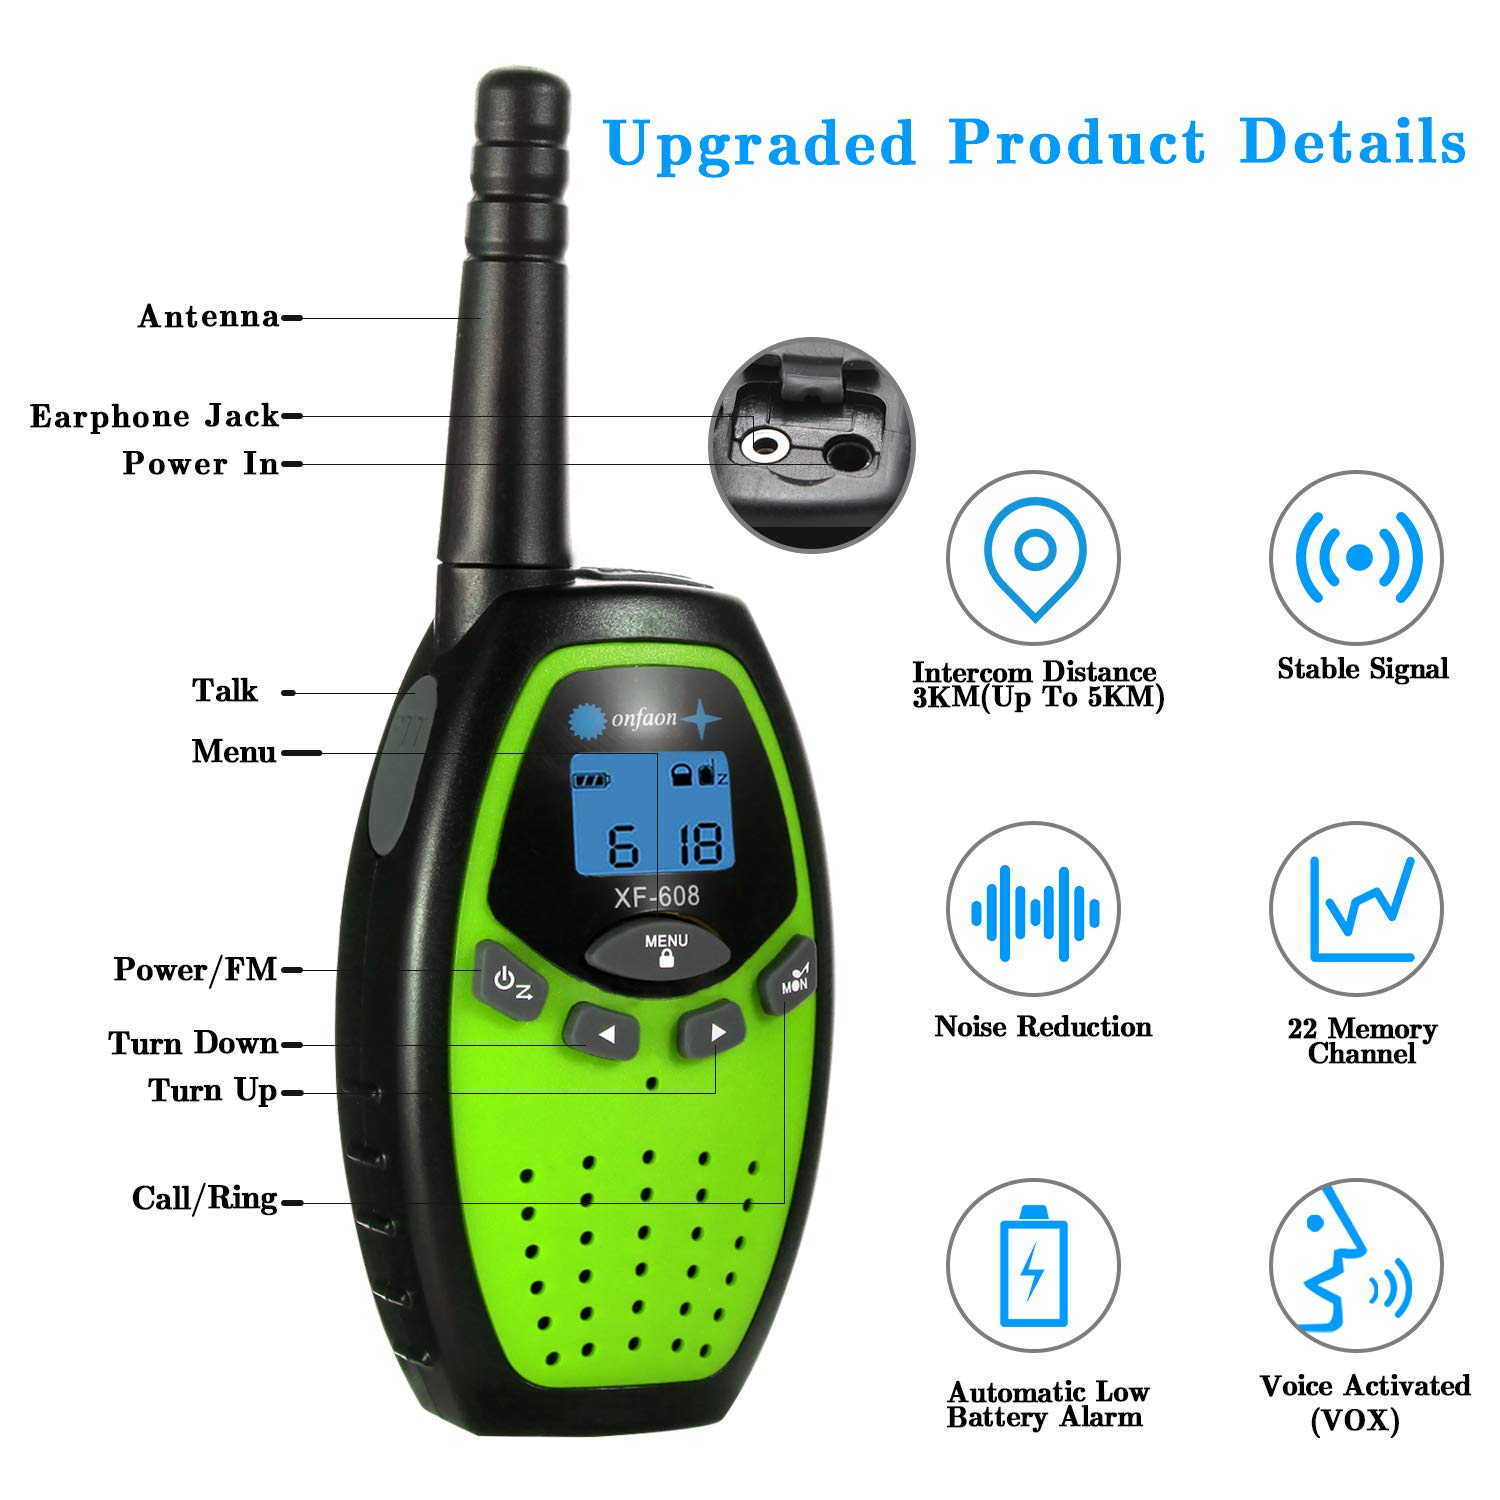 onfaon Walkies Talkies for Kids,22 Channels 2 Way Radios Long Range with Automatic Battery Save,Range Up to 2 Miles for Camping,Hiking,Fishing,Outdoor Activities. (Green) by ONFAON (Image #2)